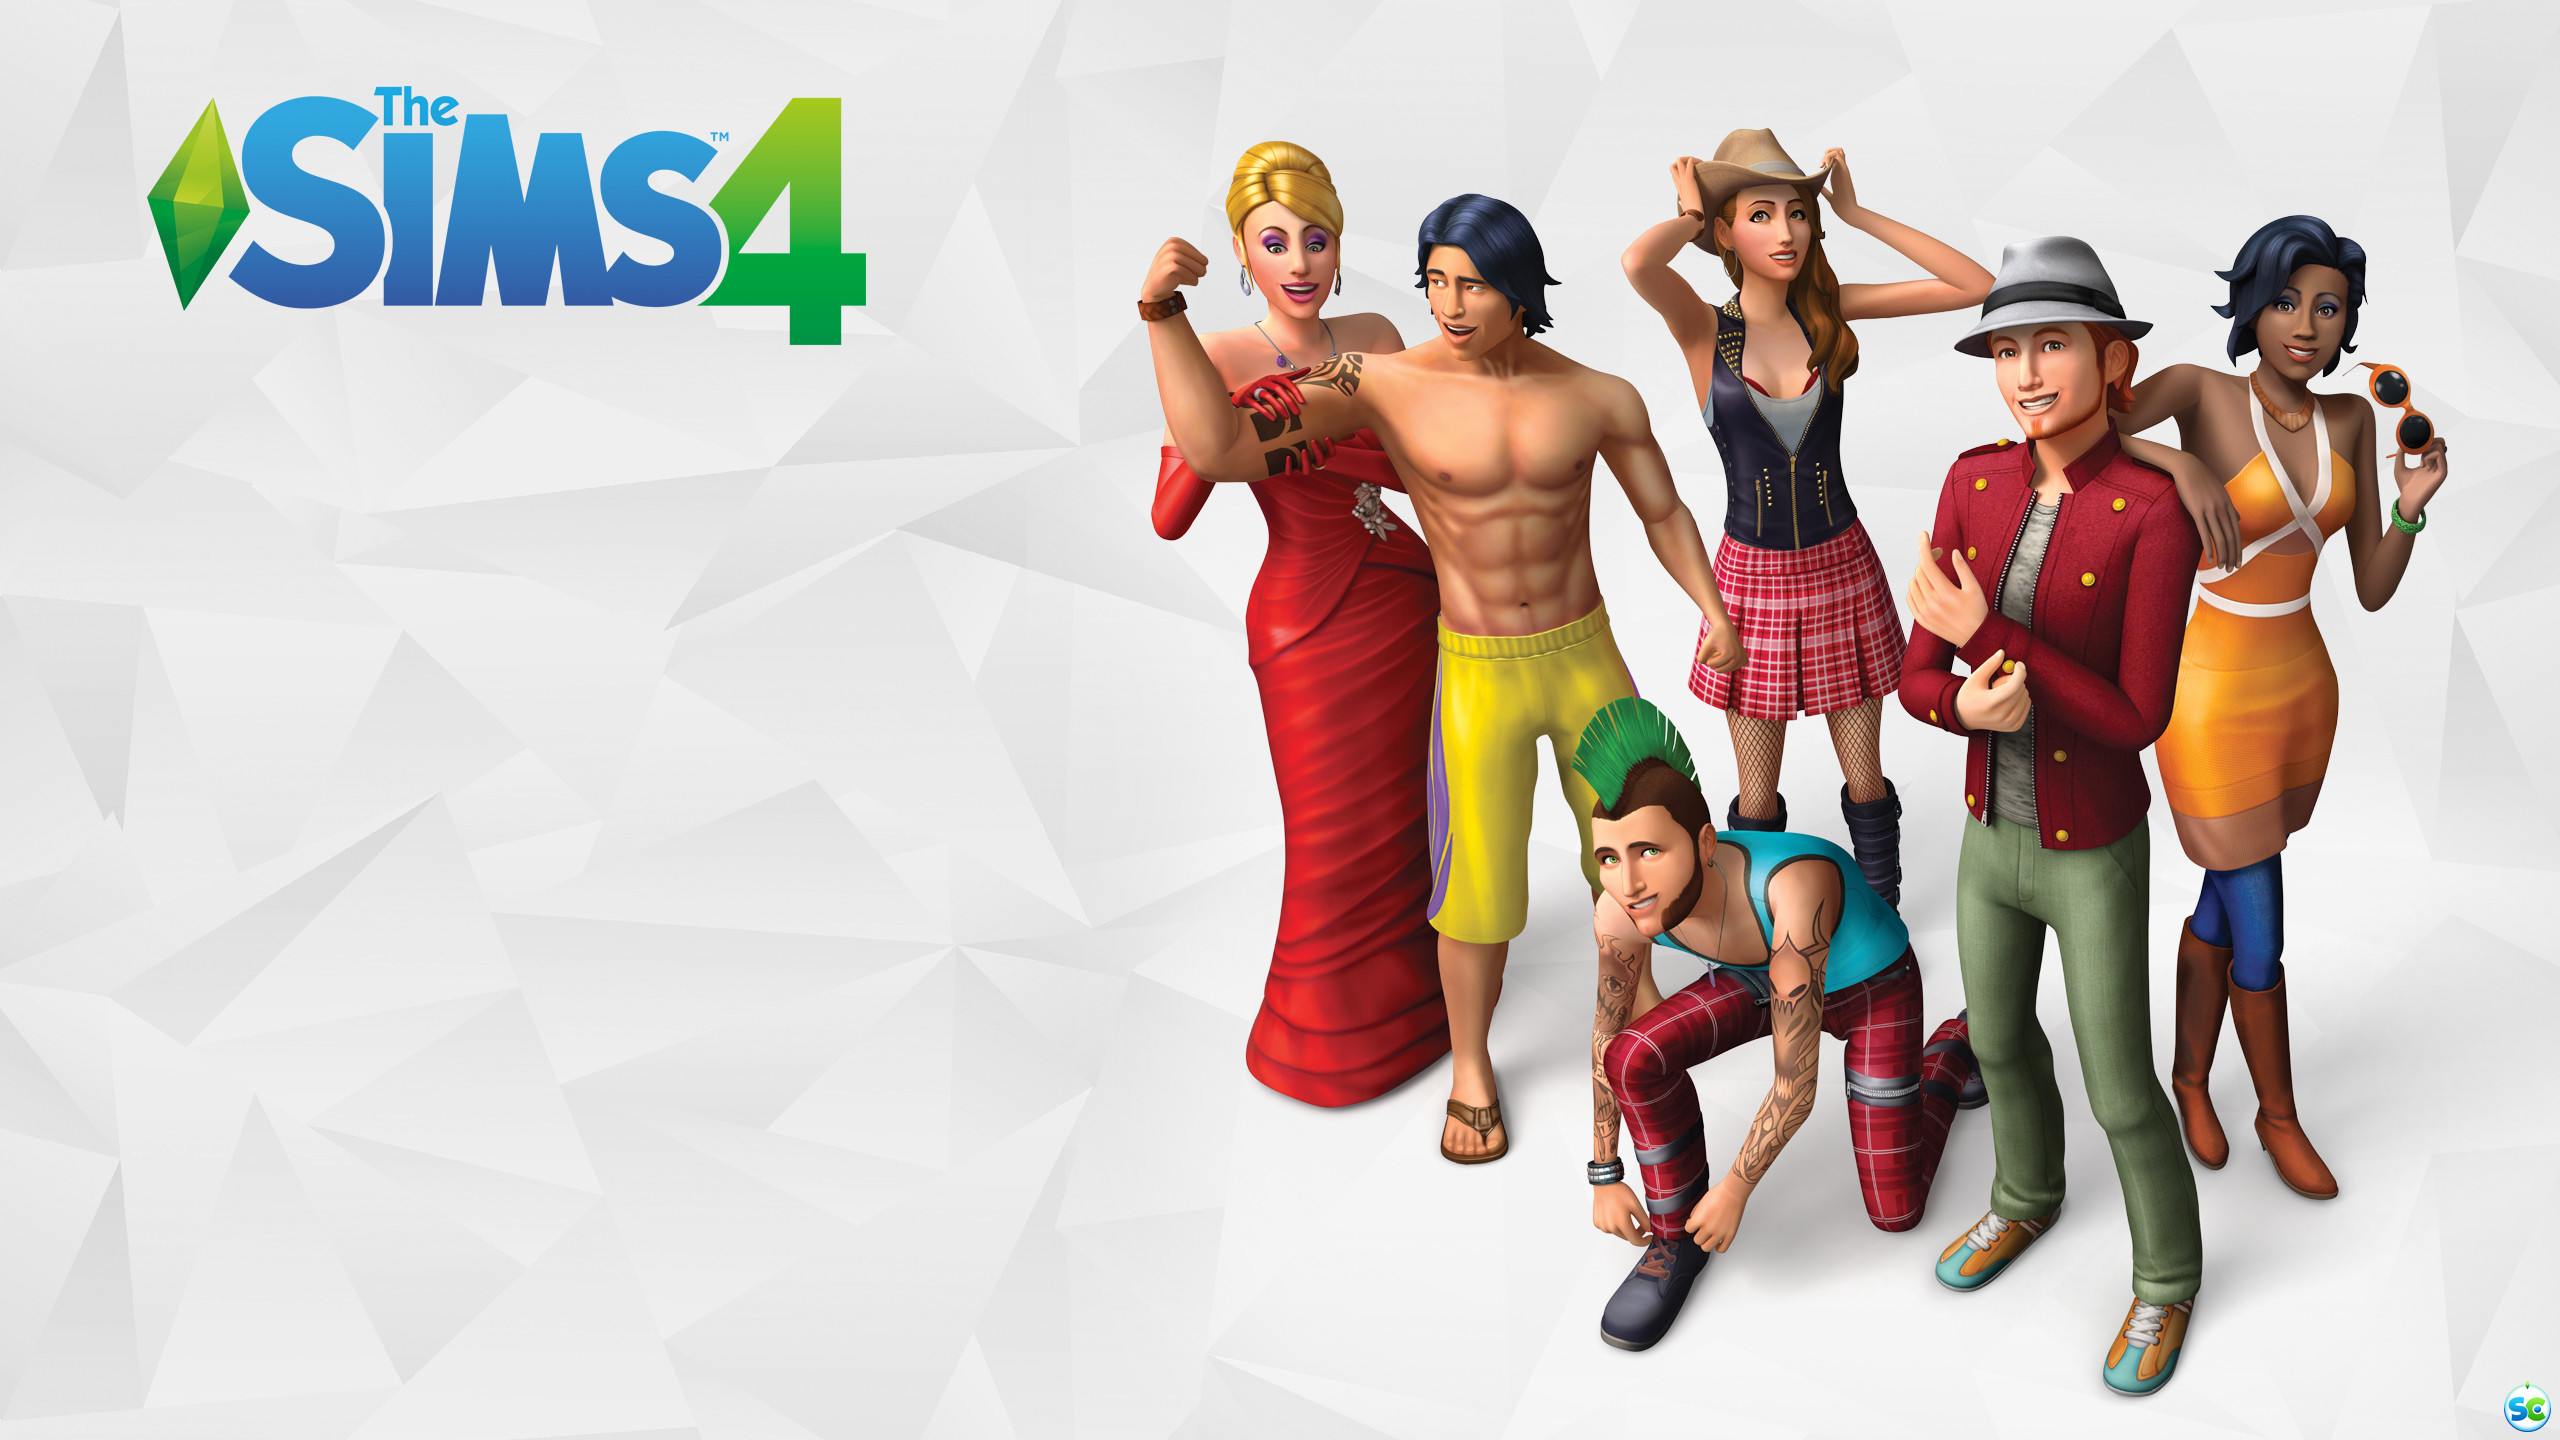 The Sims Wallpapers 1